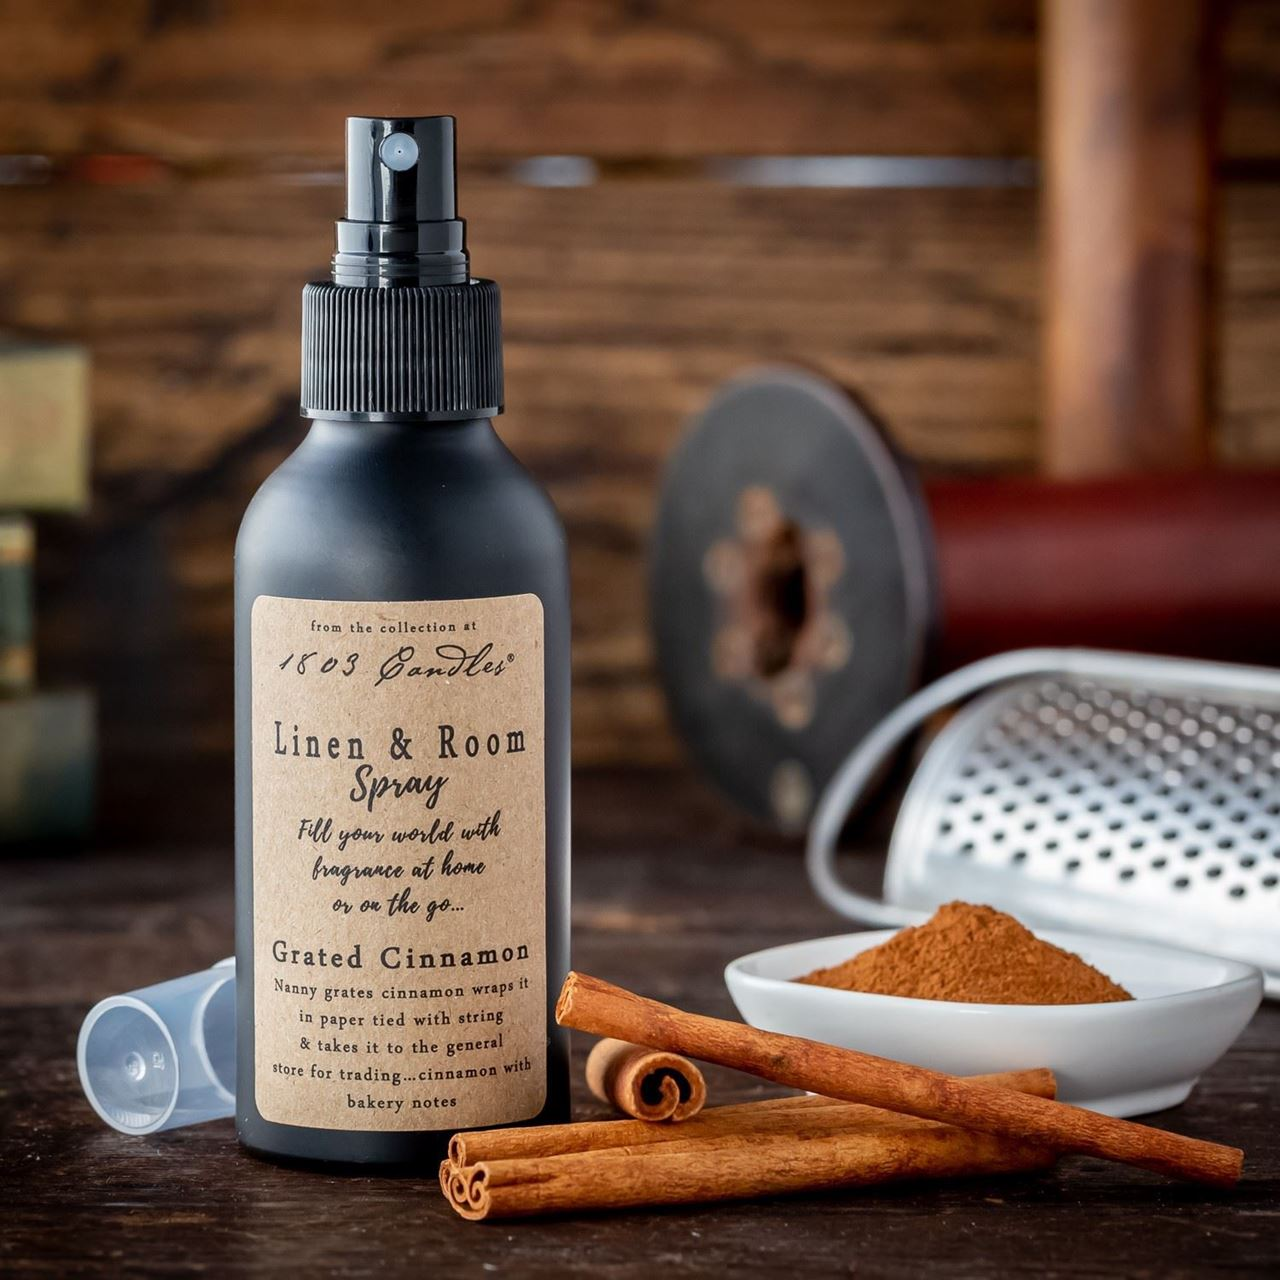 Grated Cinnamon Linen & Room Spray by 1803 Candles